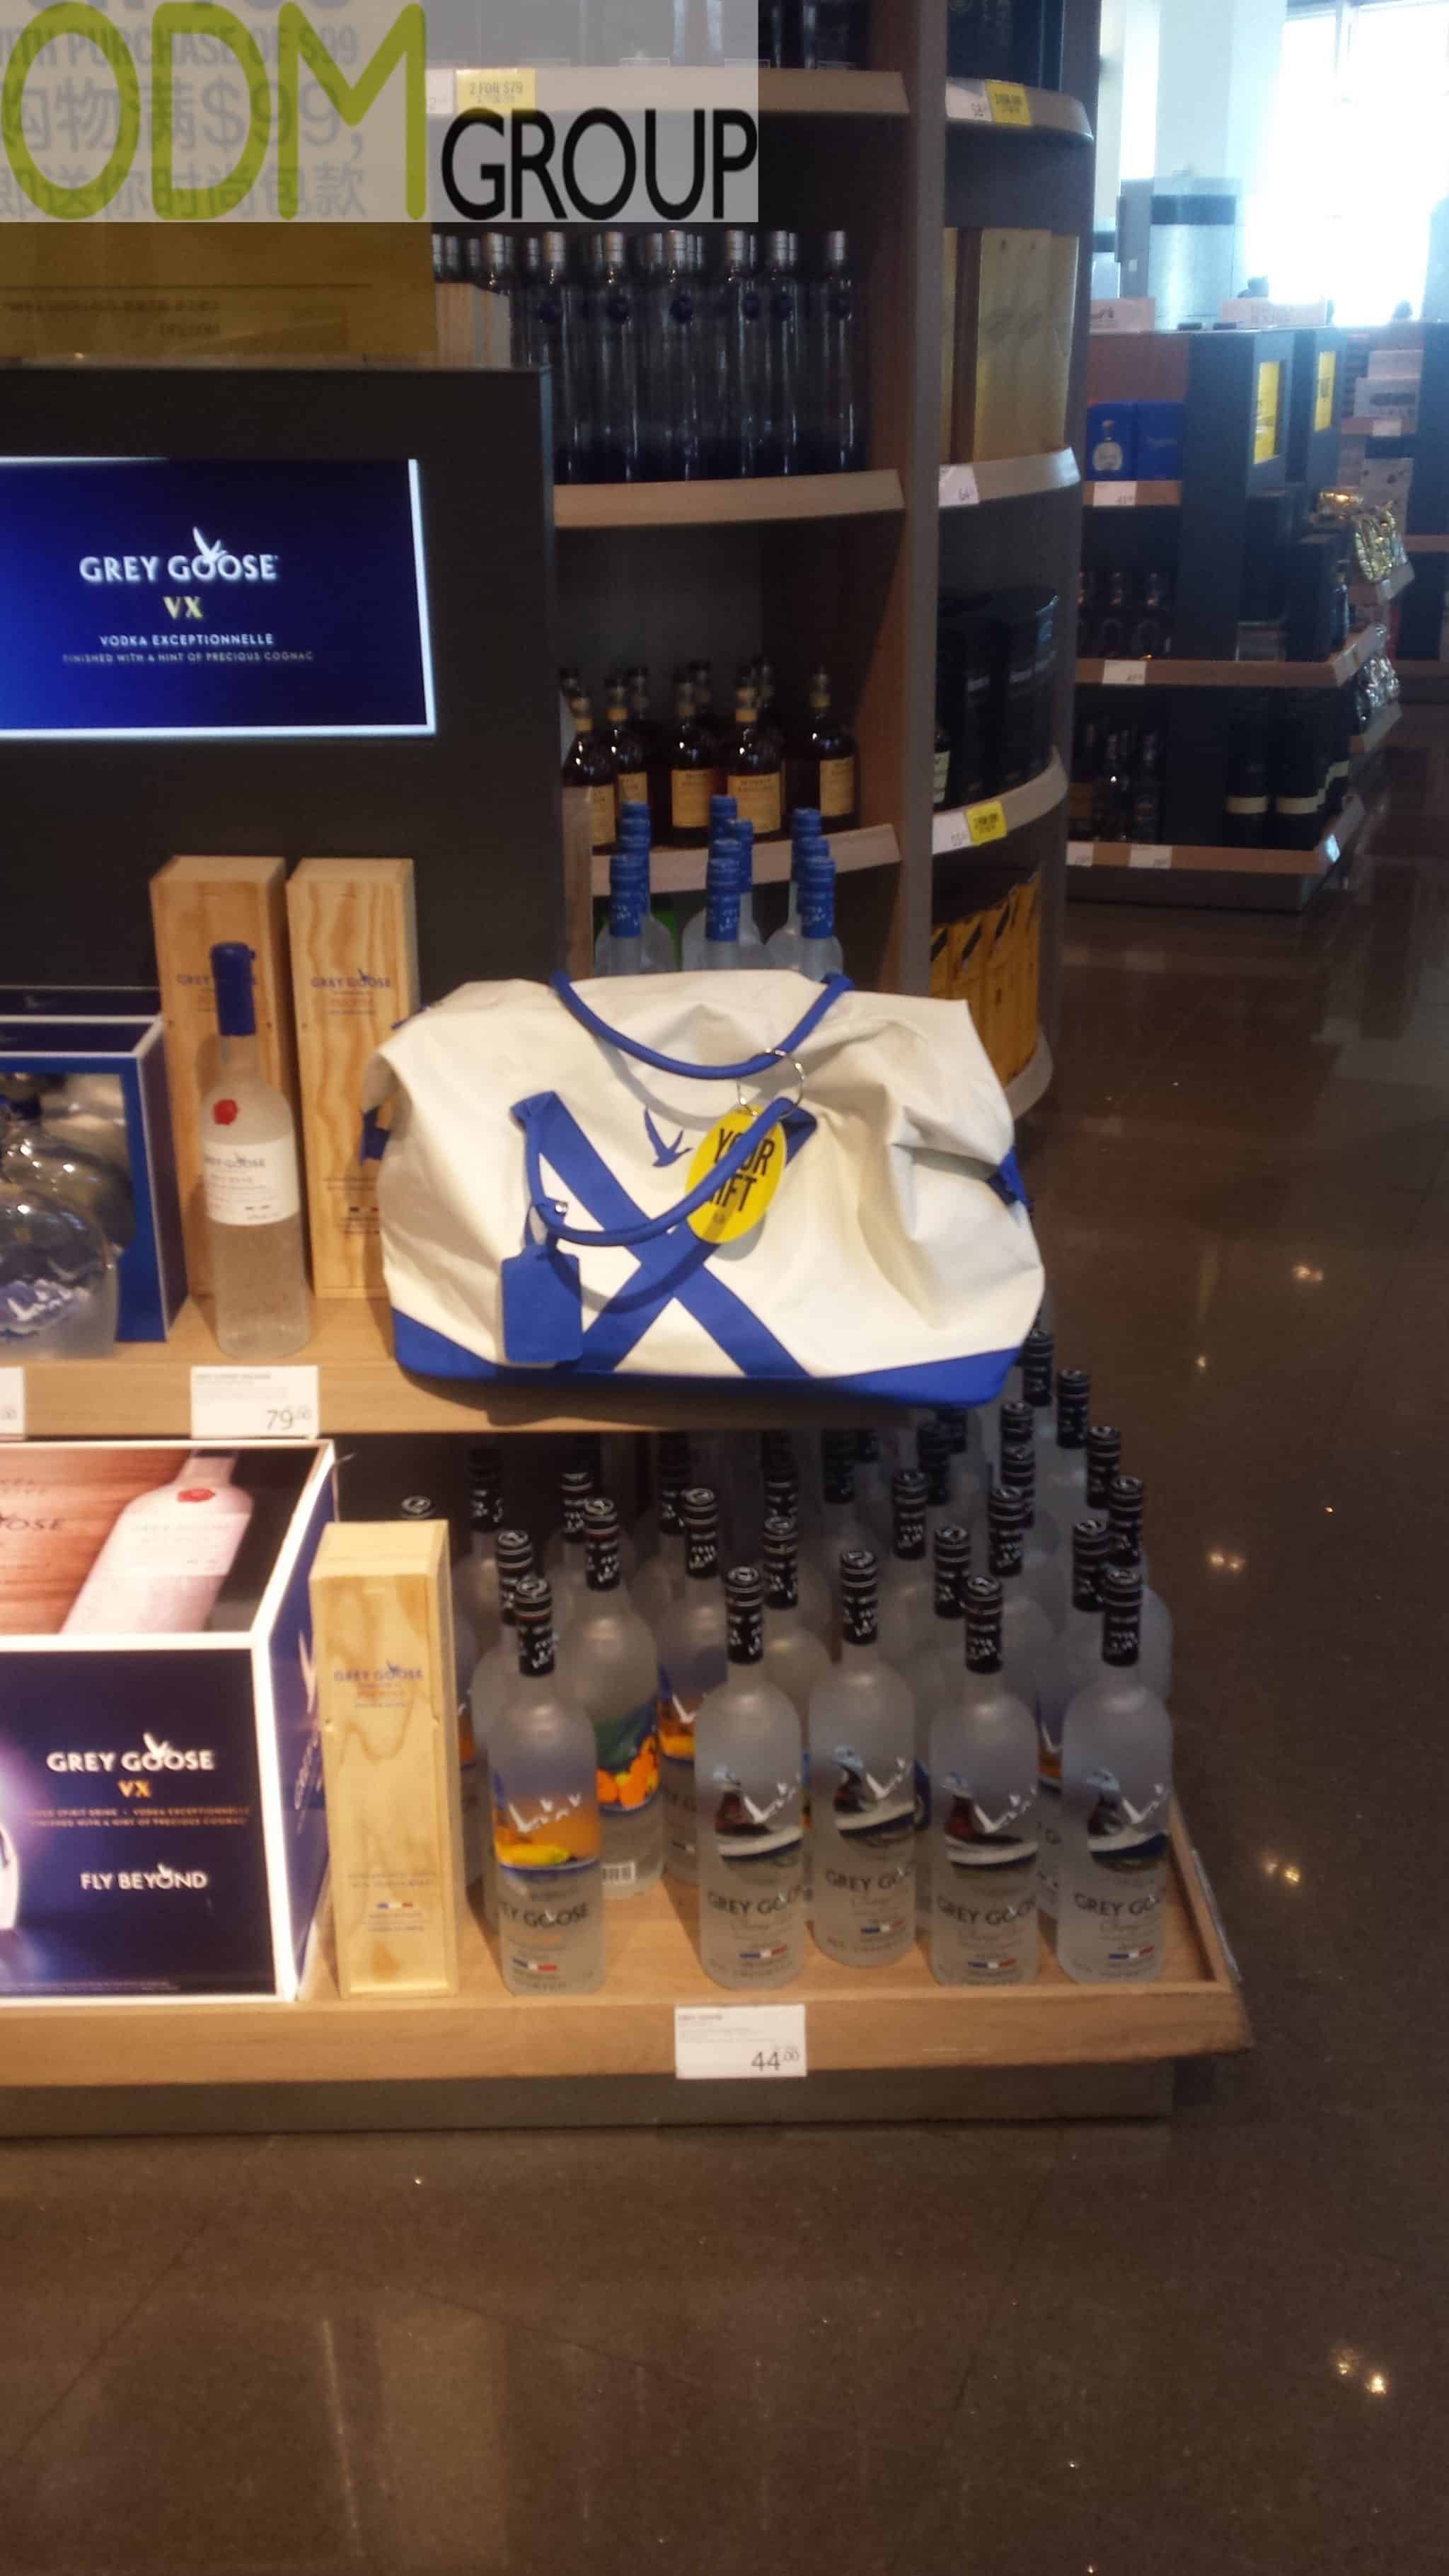 GWP Sports Bag - Promotion by Grey Goose